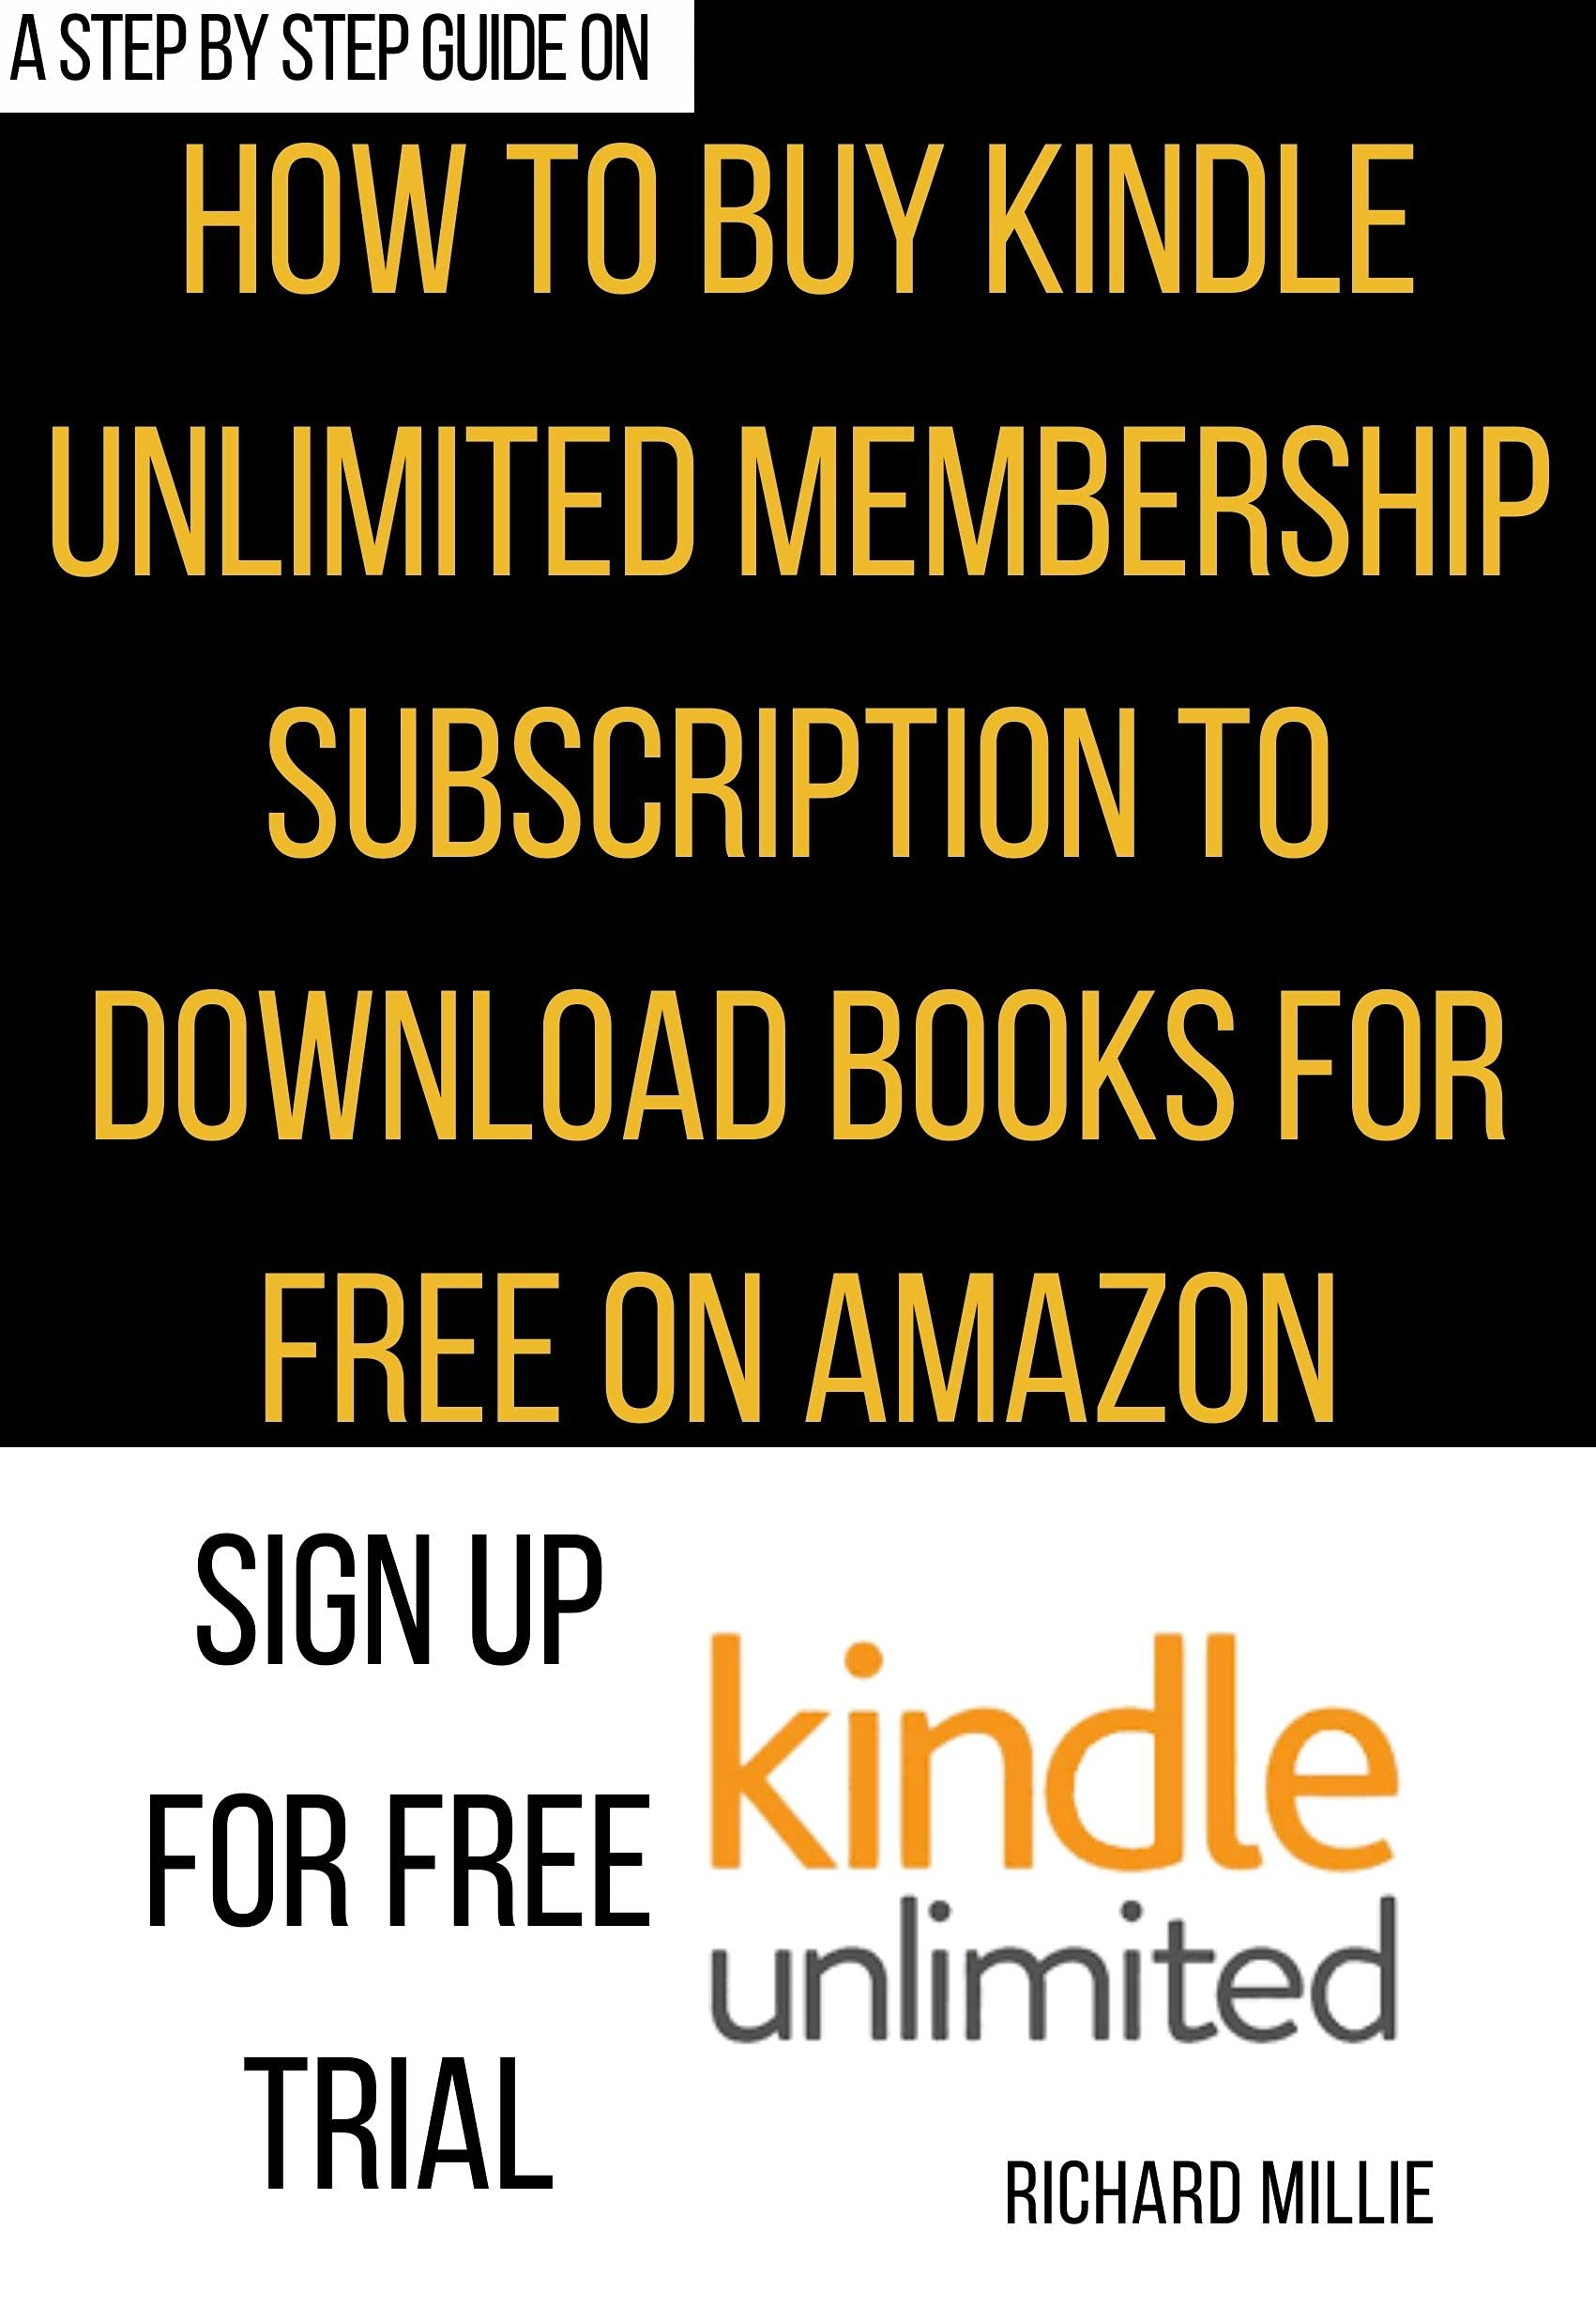 How to Buy Amazon Kindle Unlimited Membership Subscription: The step by step procedures with illustrative images to sign up for Kindle Unlimited to get & download books for free on Amazon